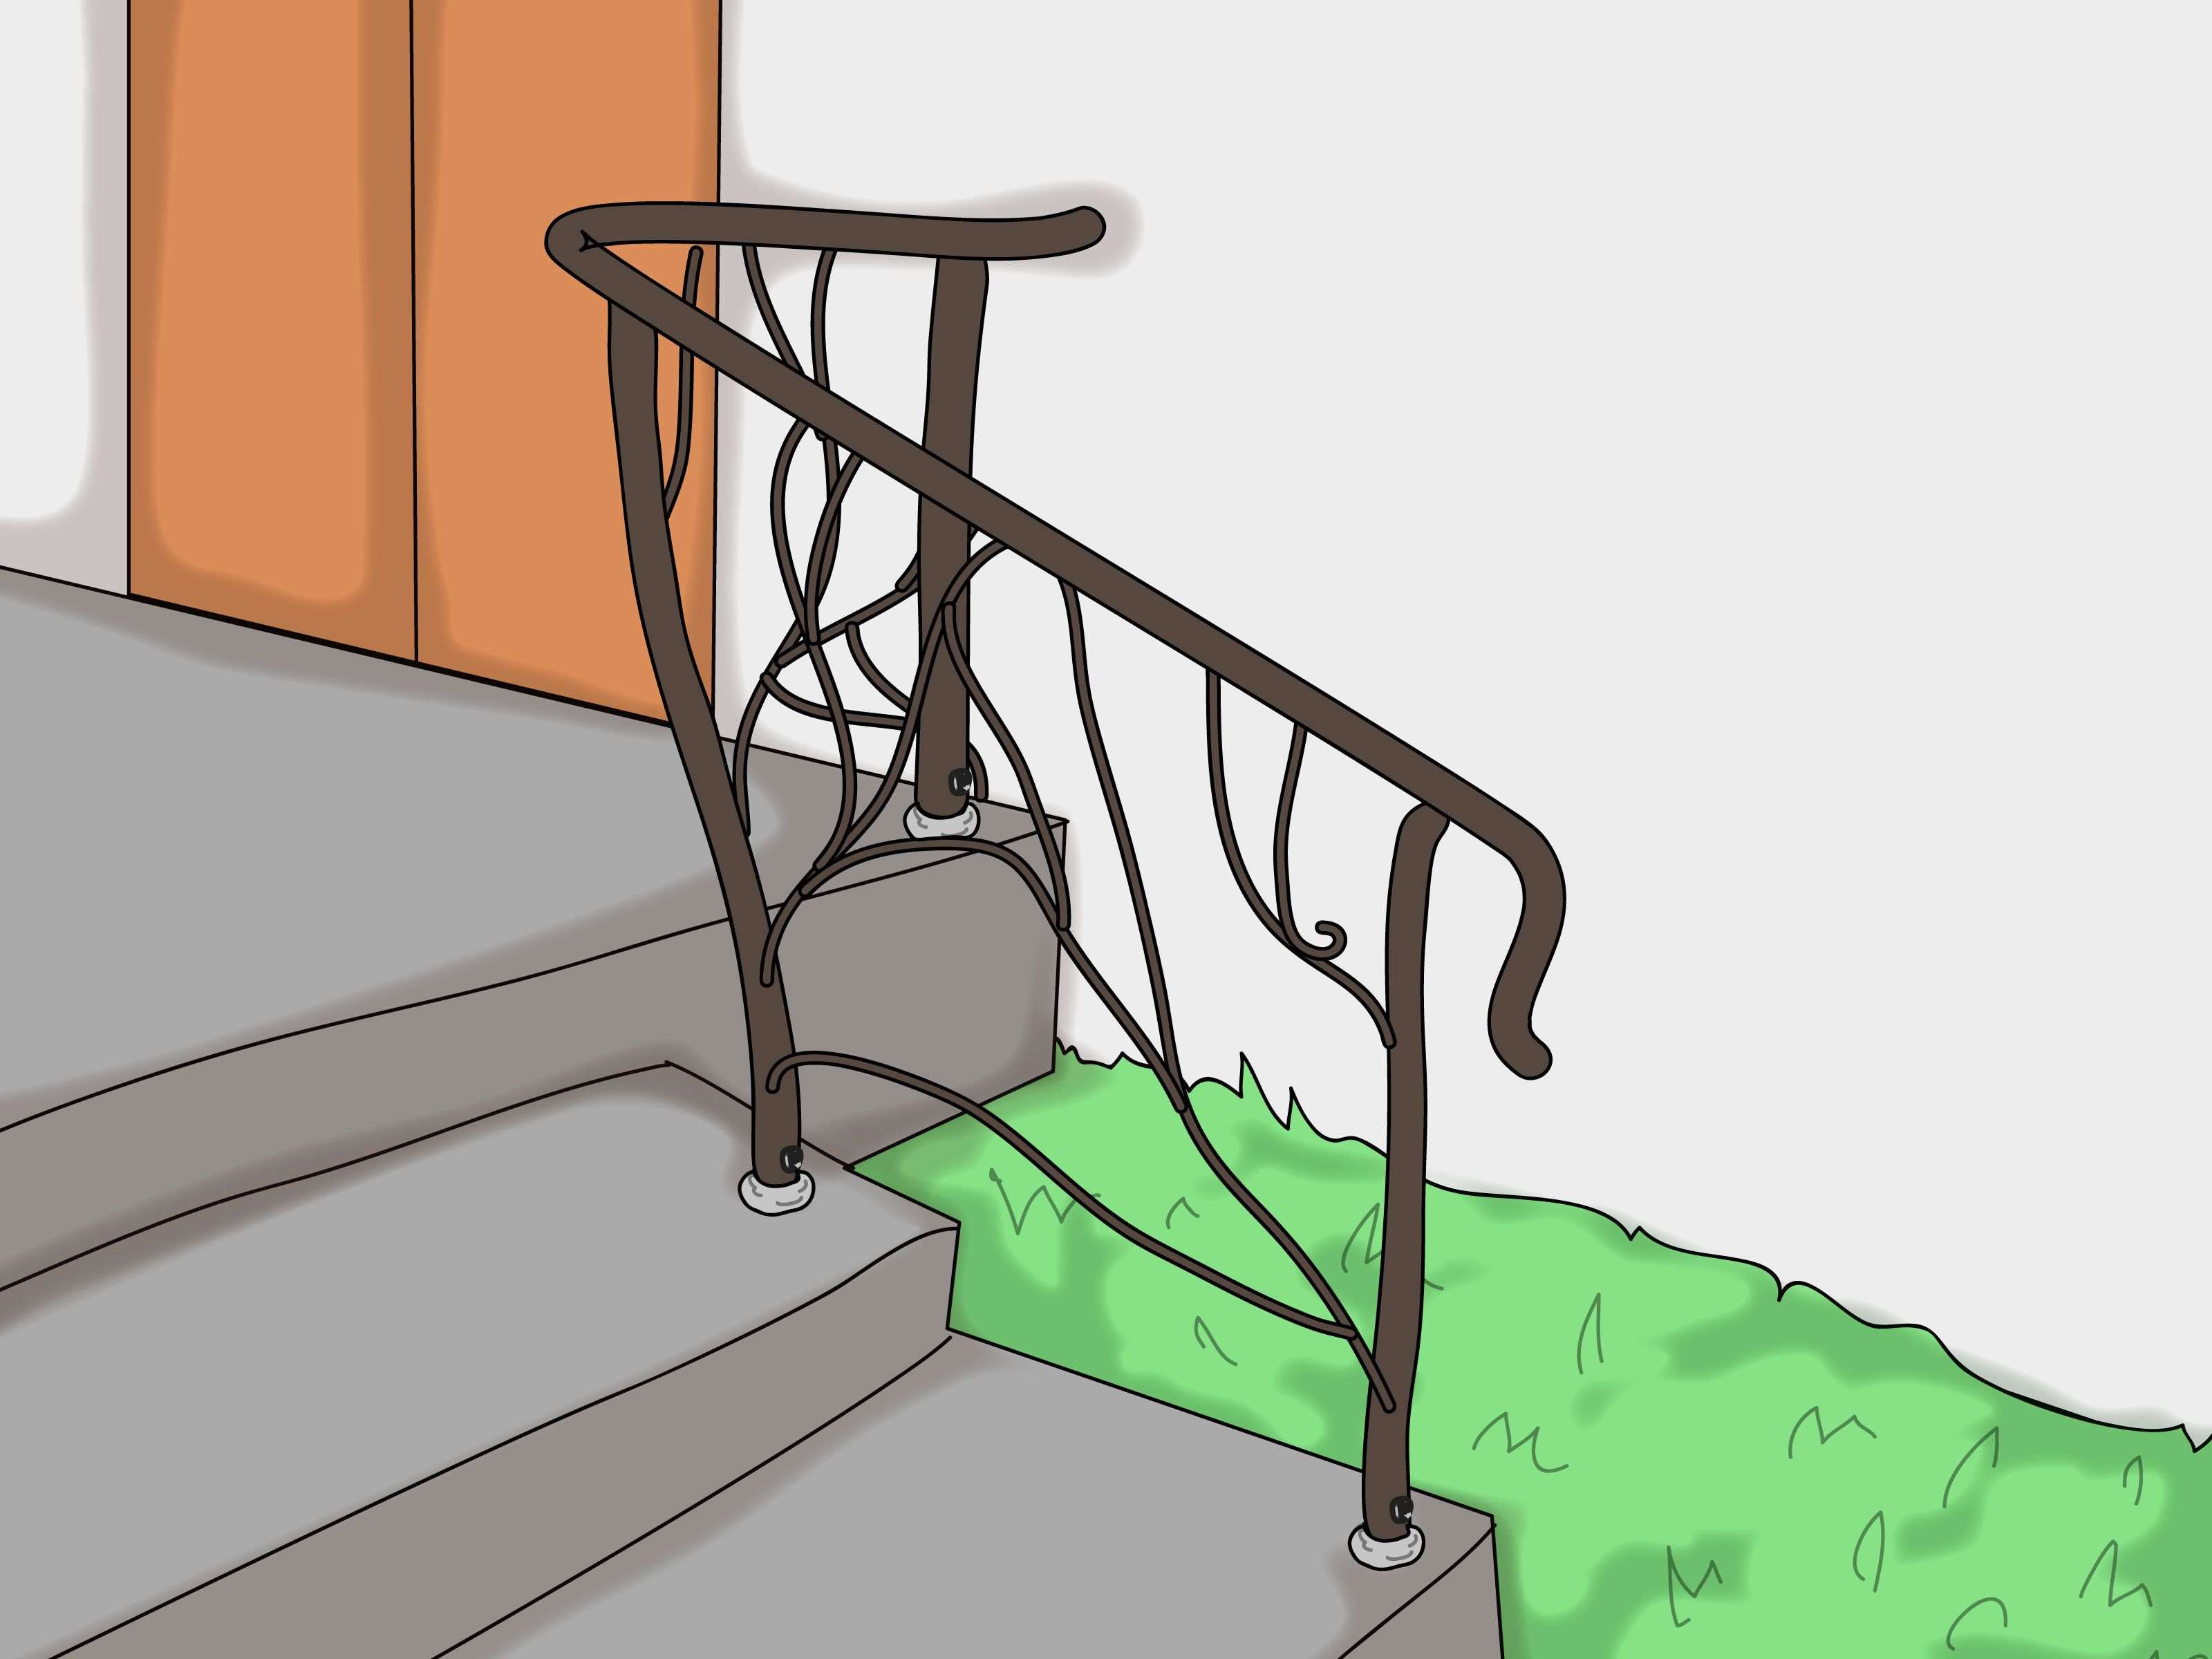 How To Repair A Loose Iron Railing Iron Railing Railing | Loose Railing In Concrete | Stairs | Concrete Steps | Cement | Aluminum | Stair Stringers